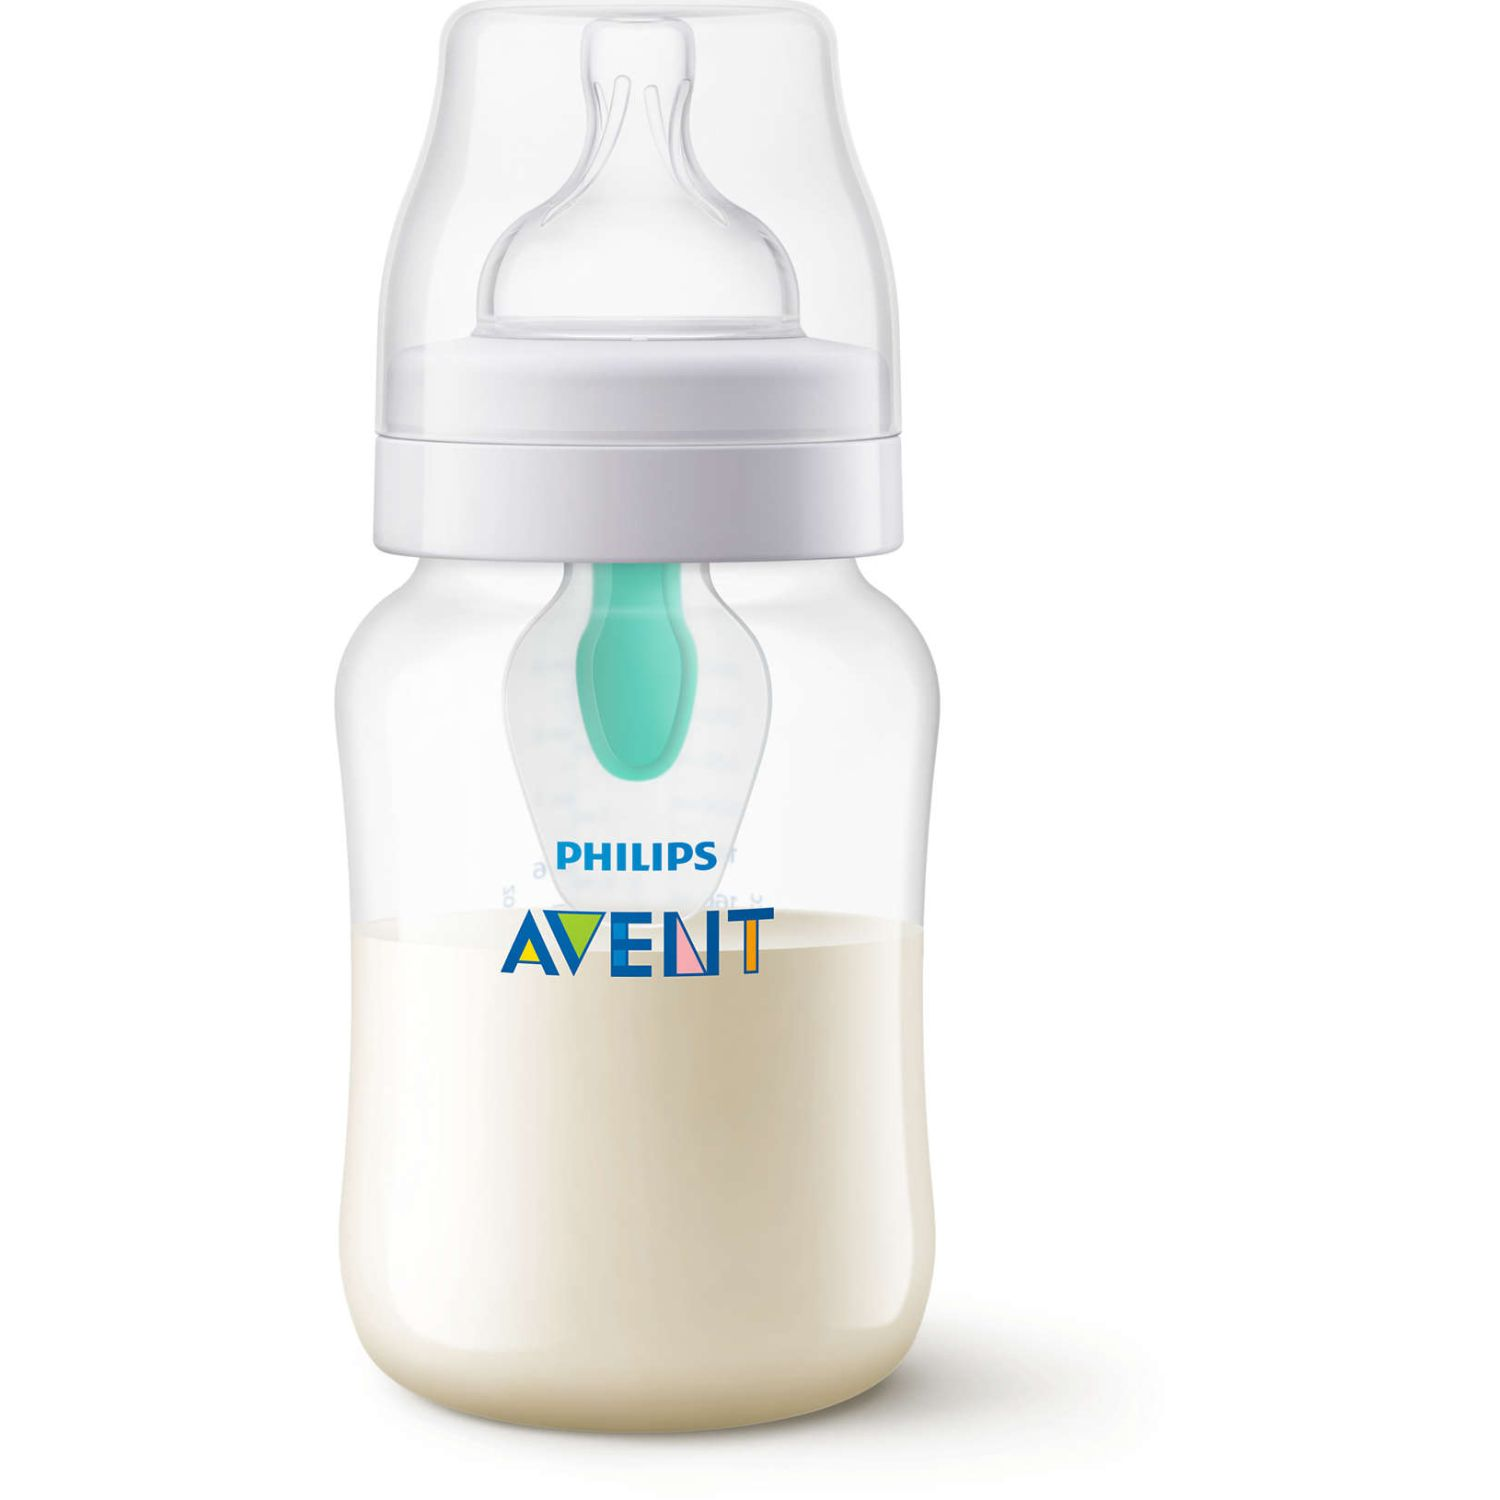 PHILIPS AVENT Biberon Anticolic 260ml C/ Valvula Air Transparente Biberones